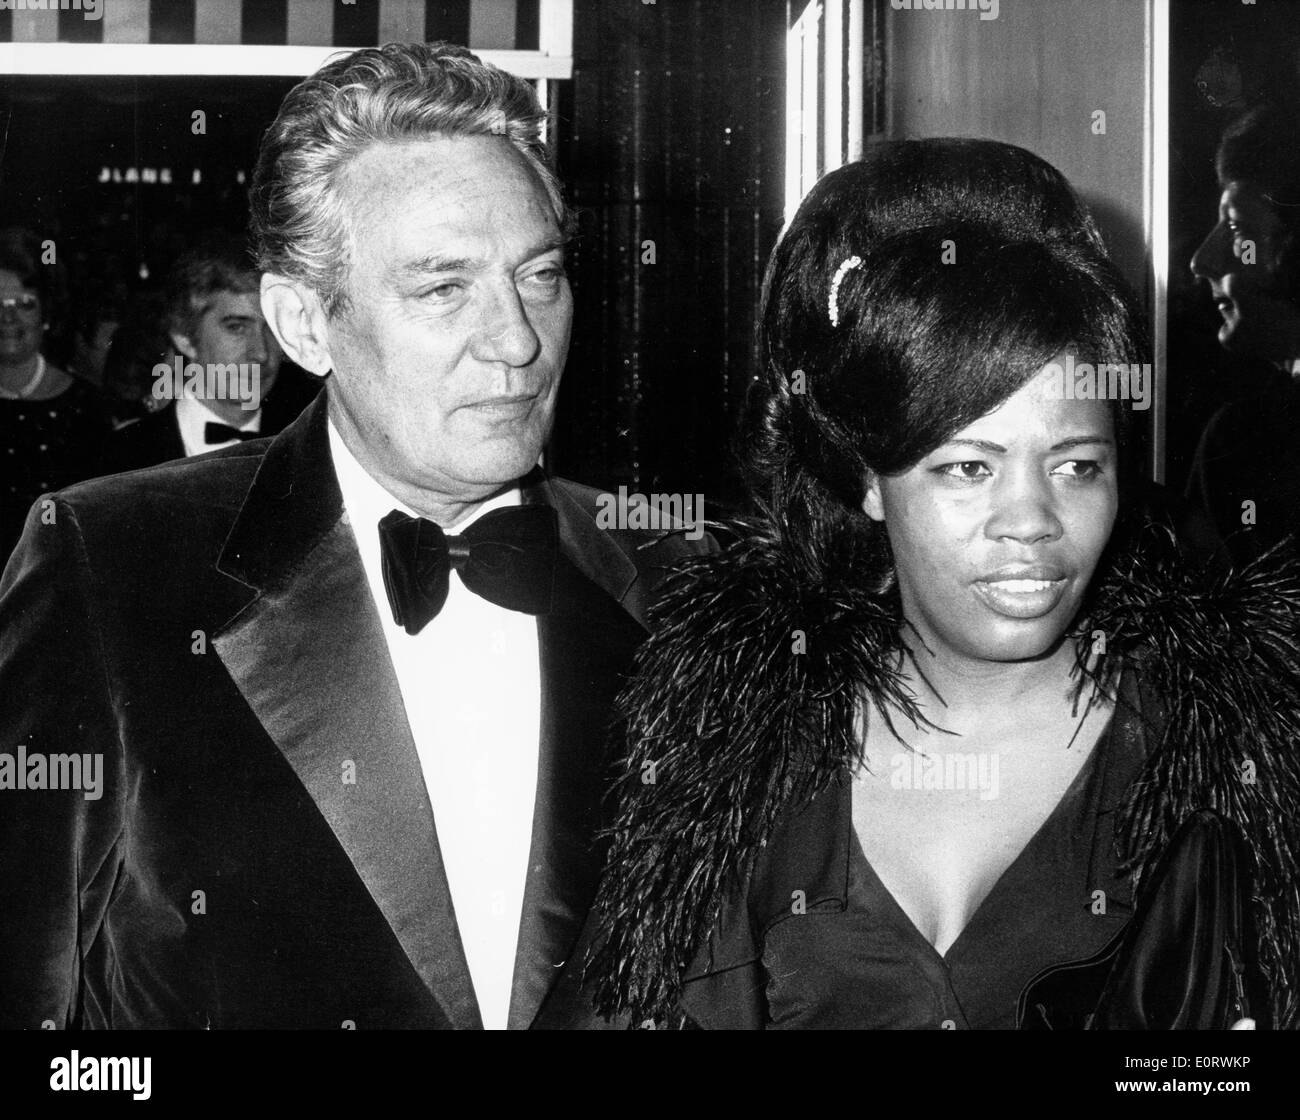 Actor Peter Finch at event with Eletha Barrett - Stock Image